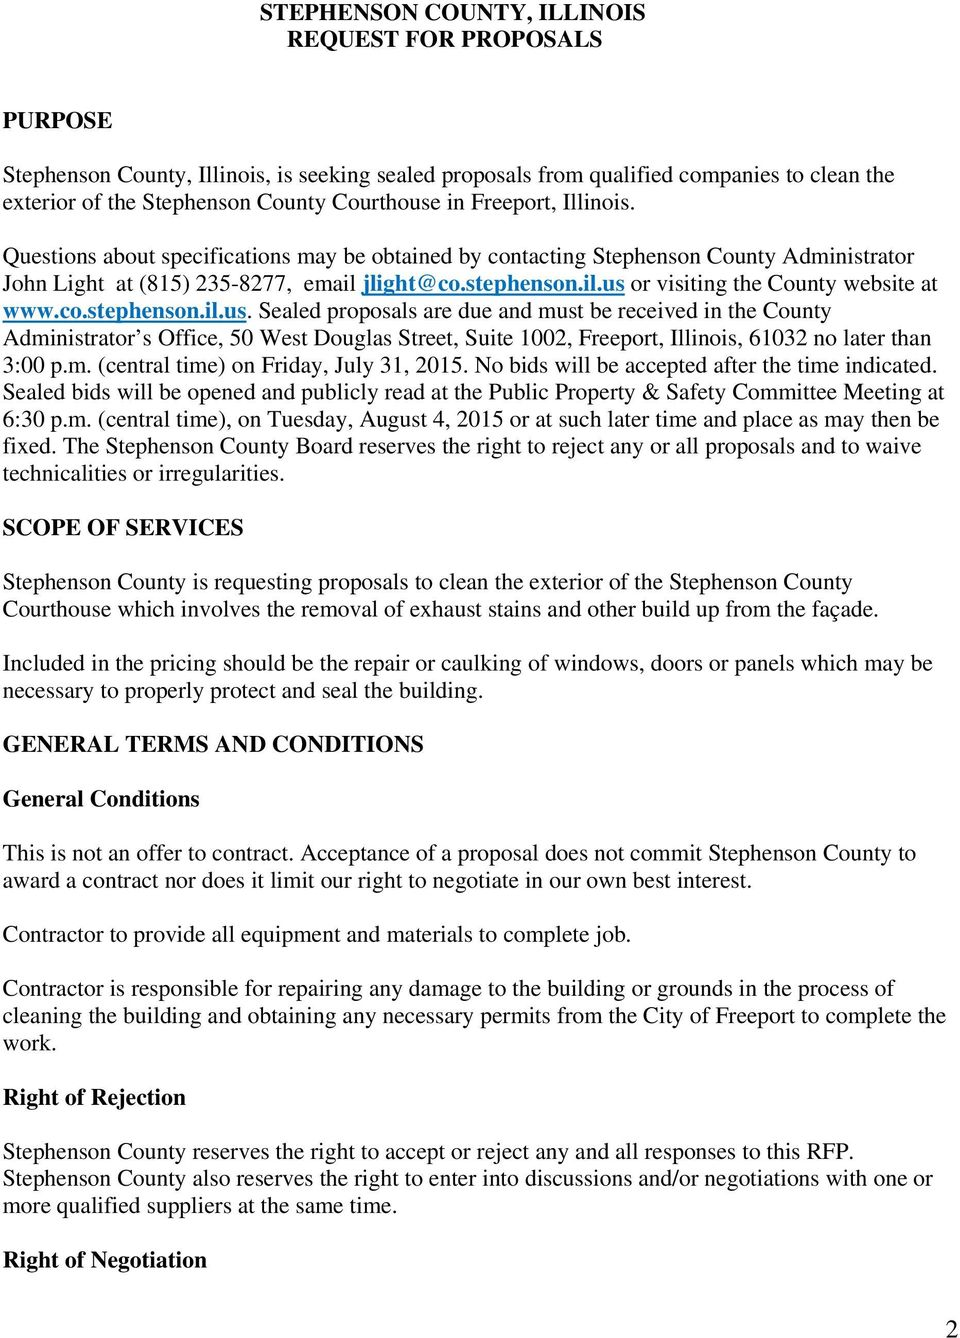 co.stephenson.il.us. Sealed proposals are due and must be received in the County Administrator s Office, 50 West Douglas Street, Suite 1002, Freeport, Illinois, 61032 no later than 3:00 p.m. (central time) on Friday, July 31, 2015.